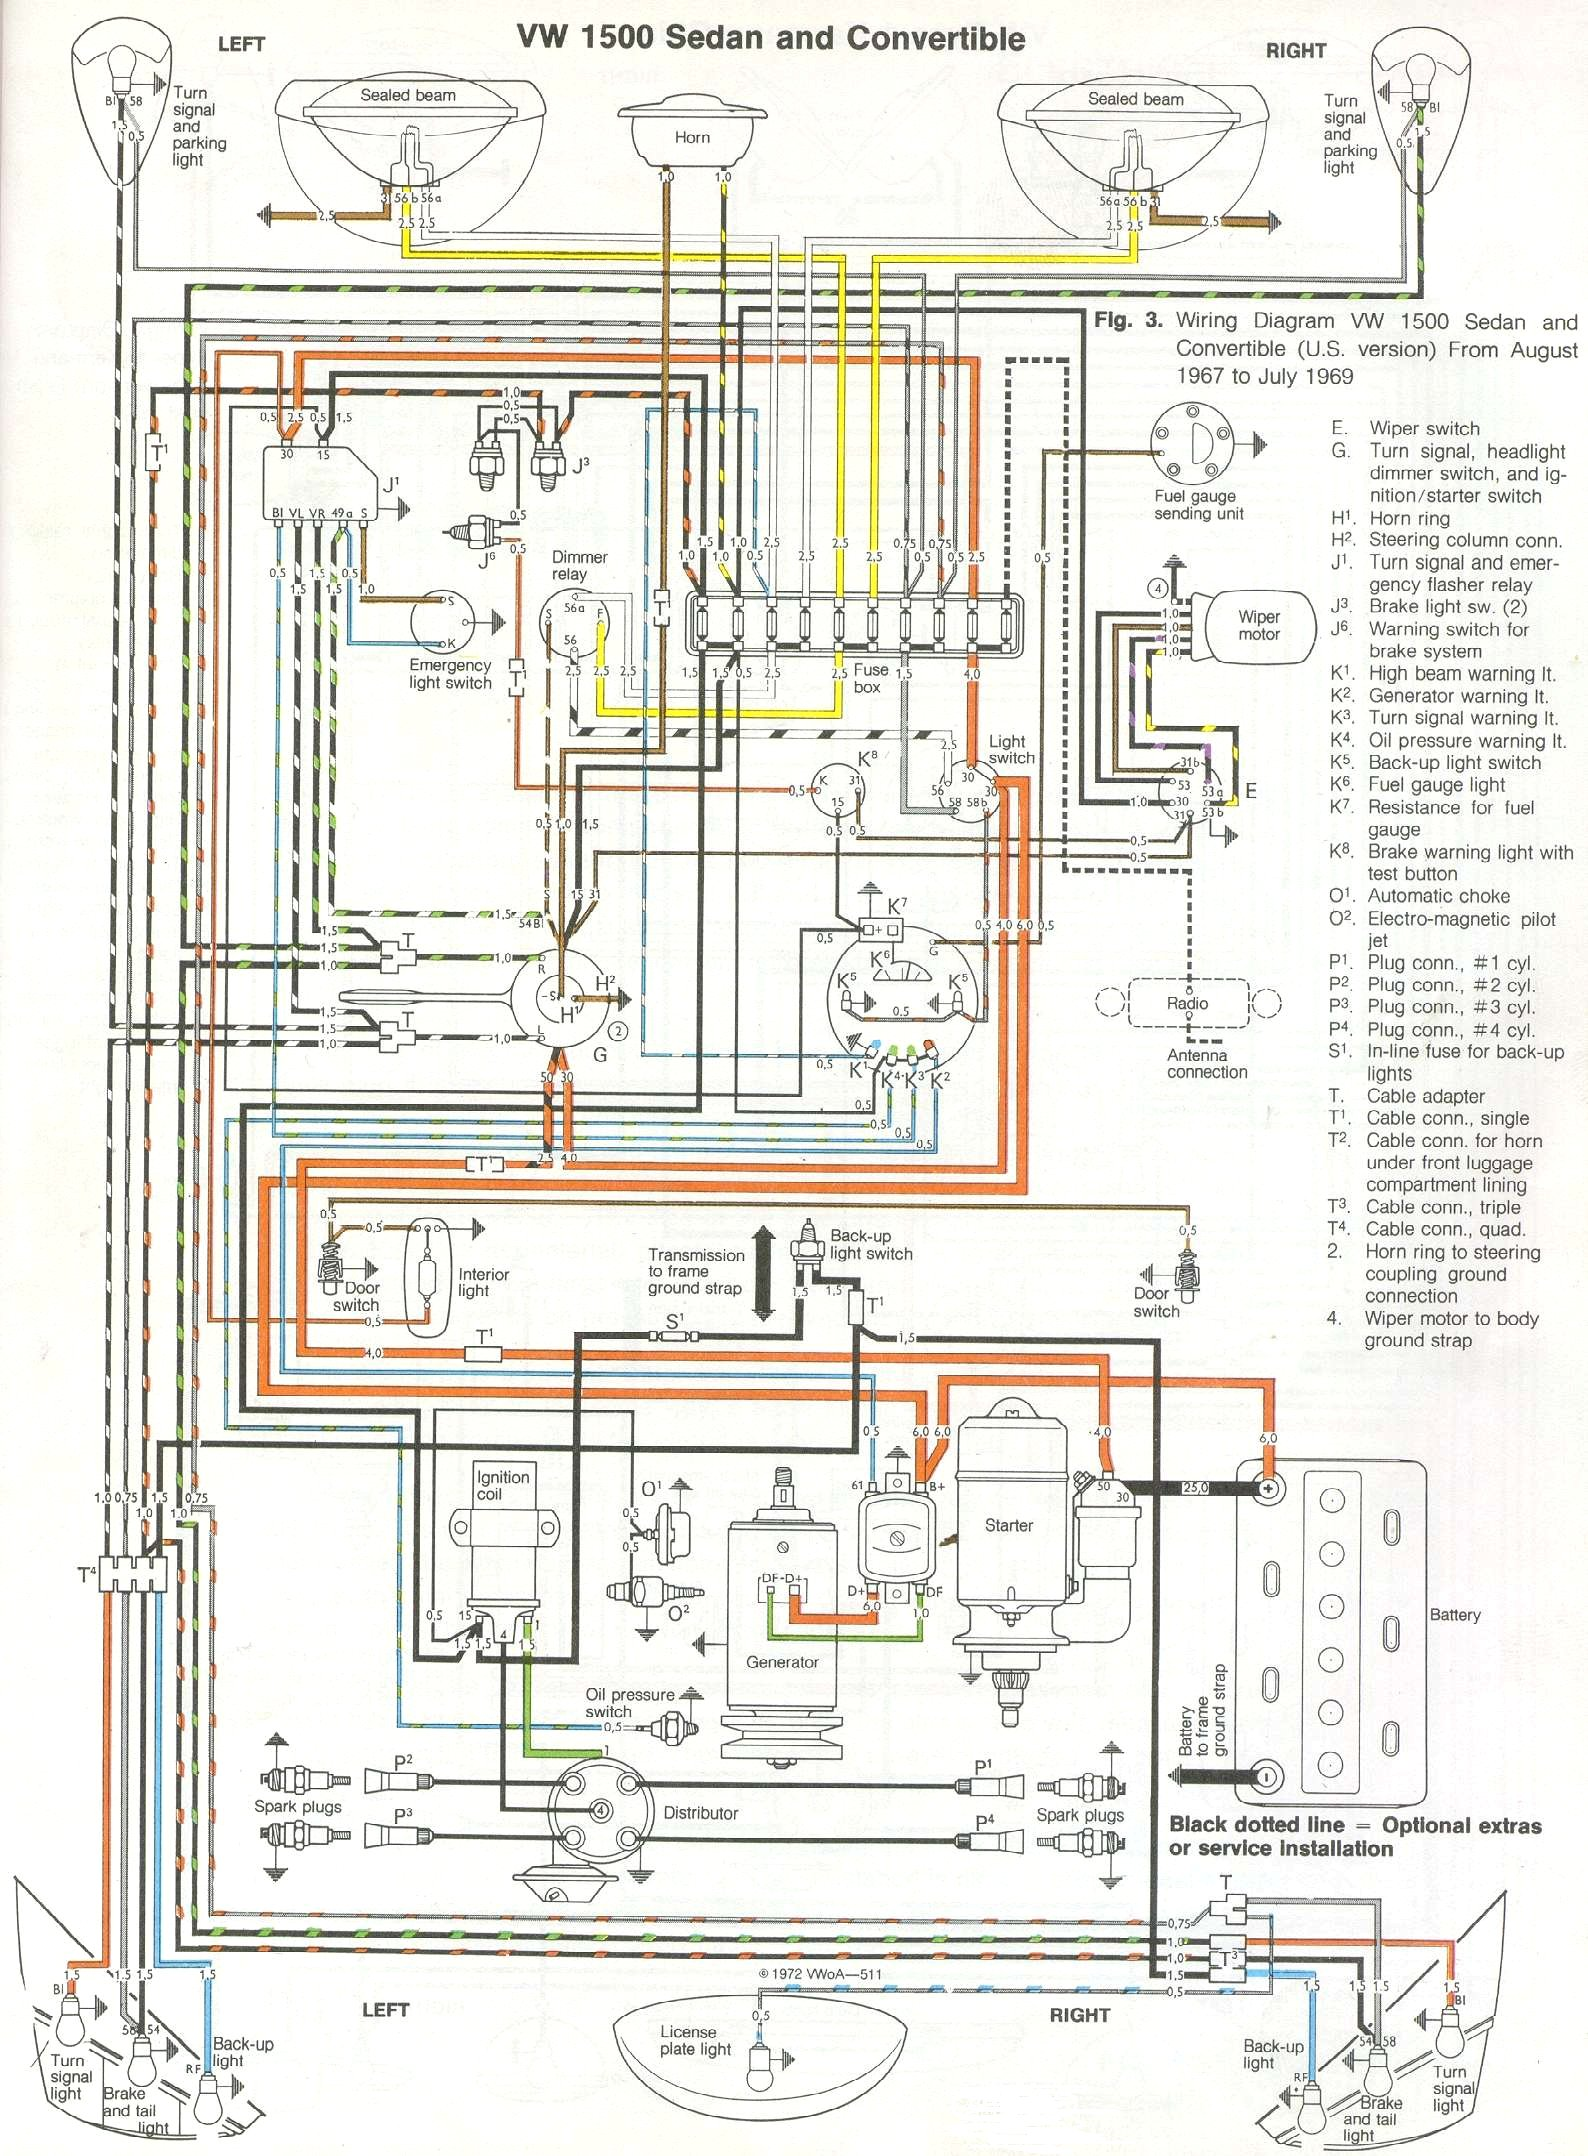 1969 71 Beetle Wiring Diagram Thegoldenbug Com VW Bug Diagram Volkswagen  Super Beetle Wiring Diagram